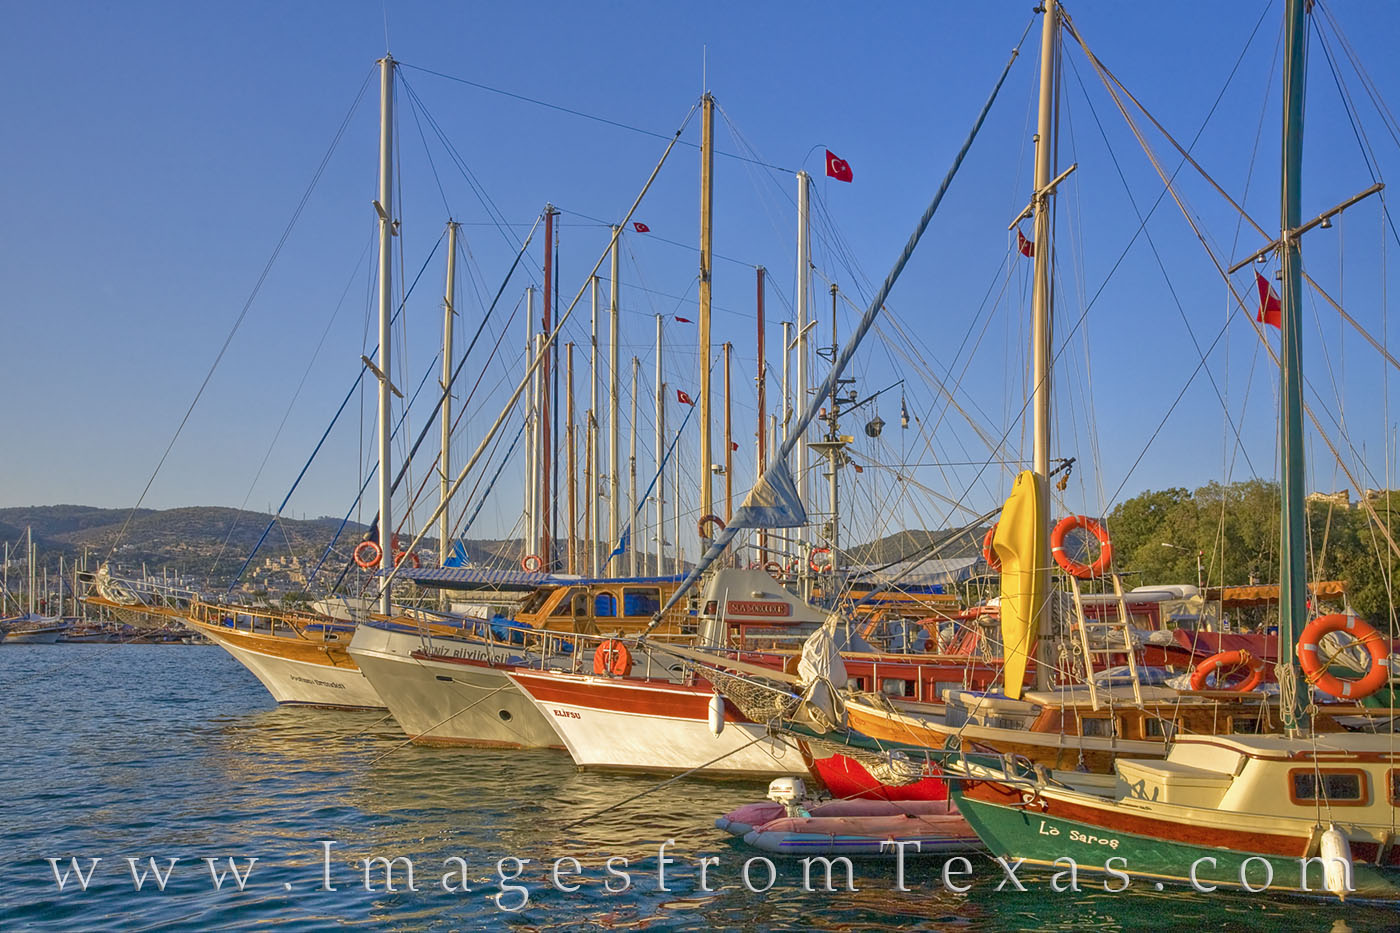 bodrum, turkey, boats, harbor, aegean, Gulf of Gökova, port, photo